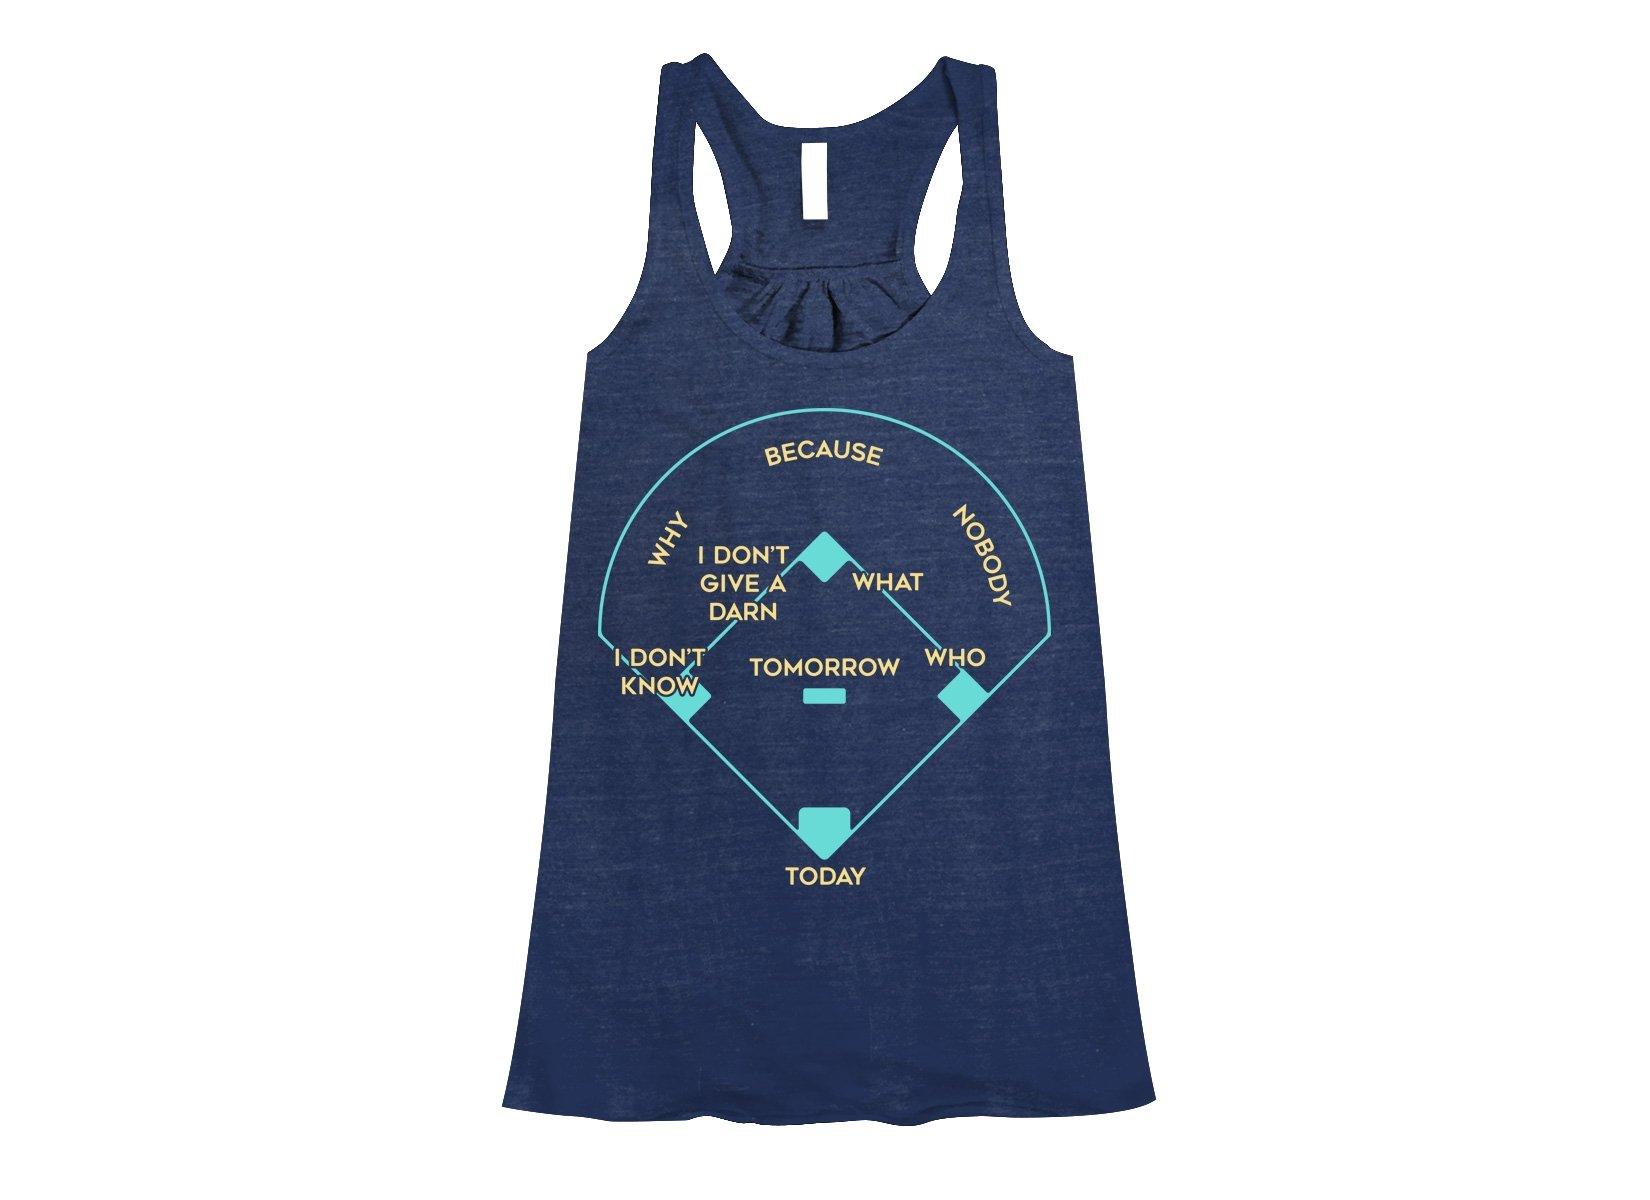 Baseball Positions on Womens Tanks T-Shirt